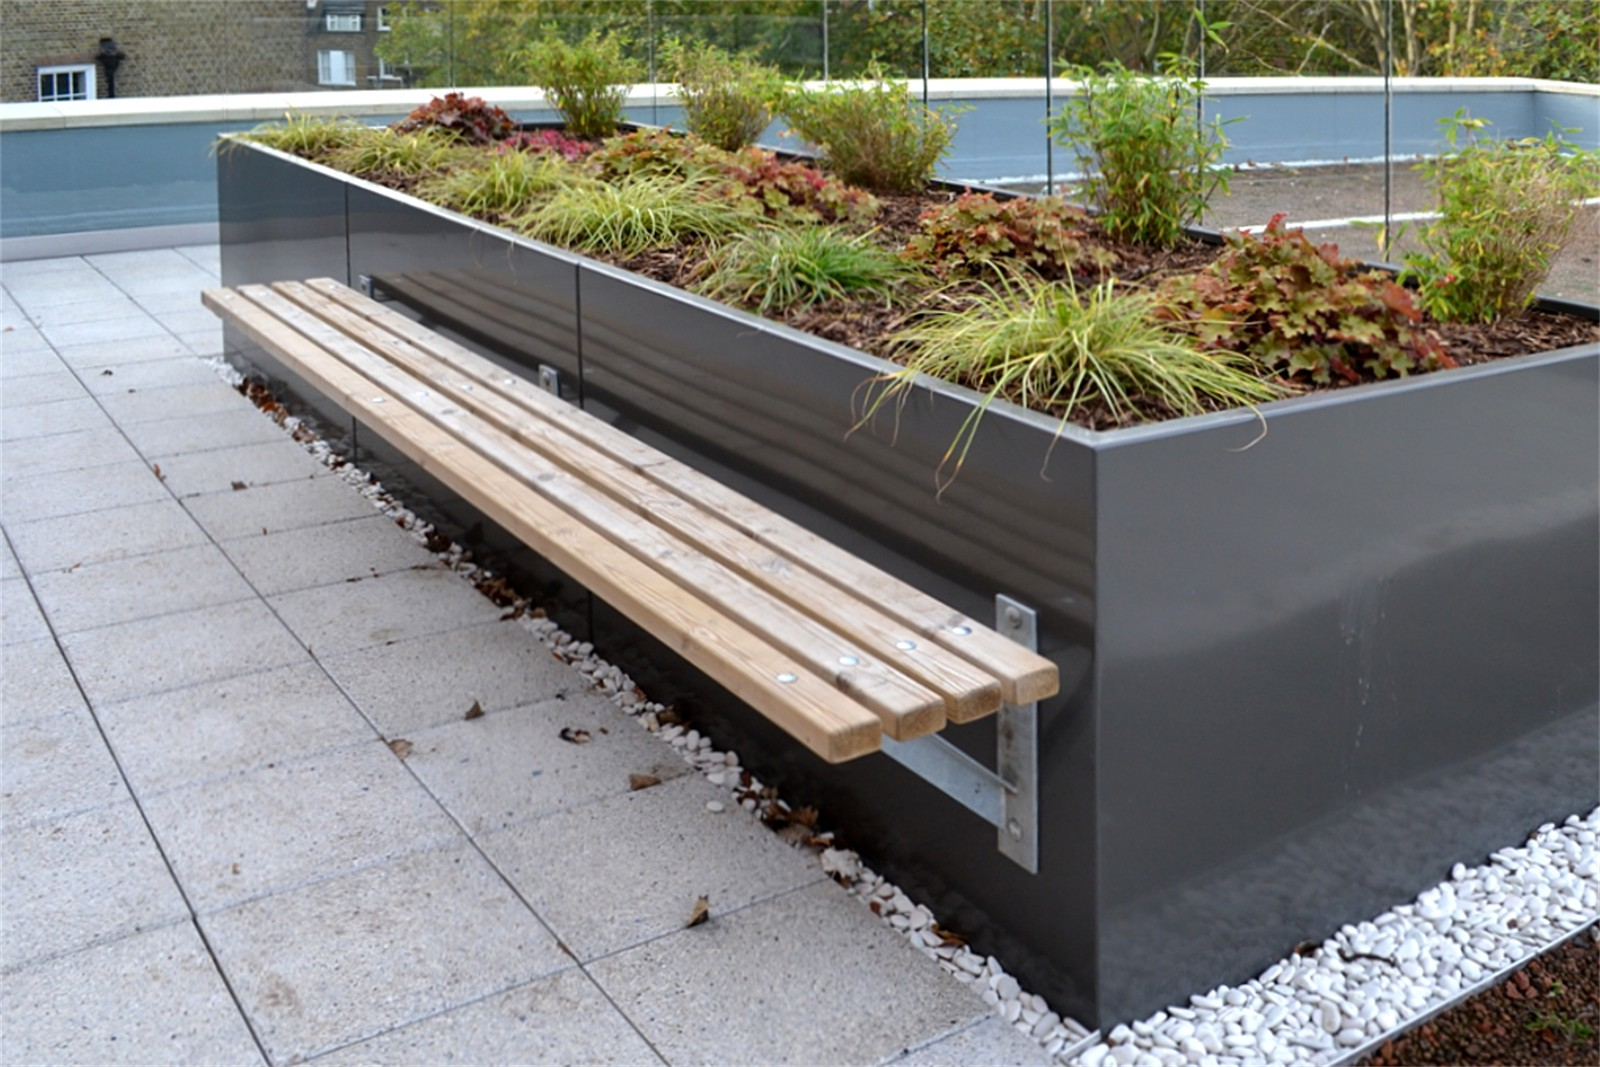 60sbe13 - Bexley side fixed planter bench